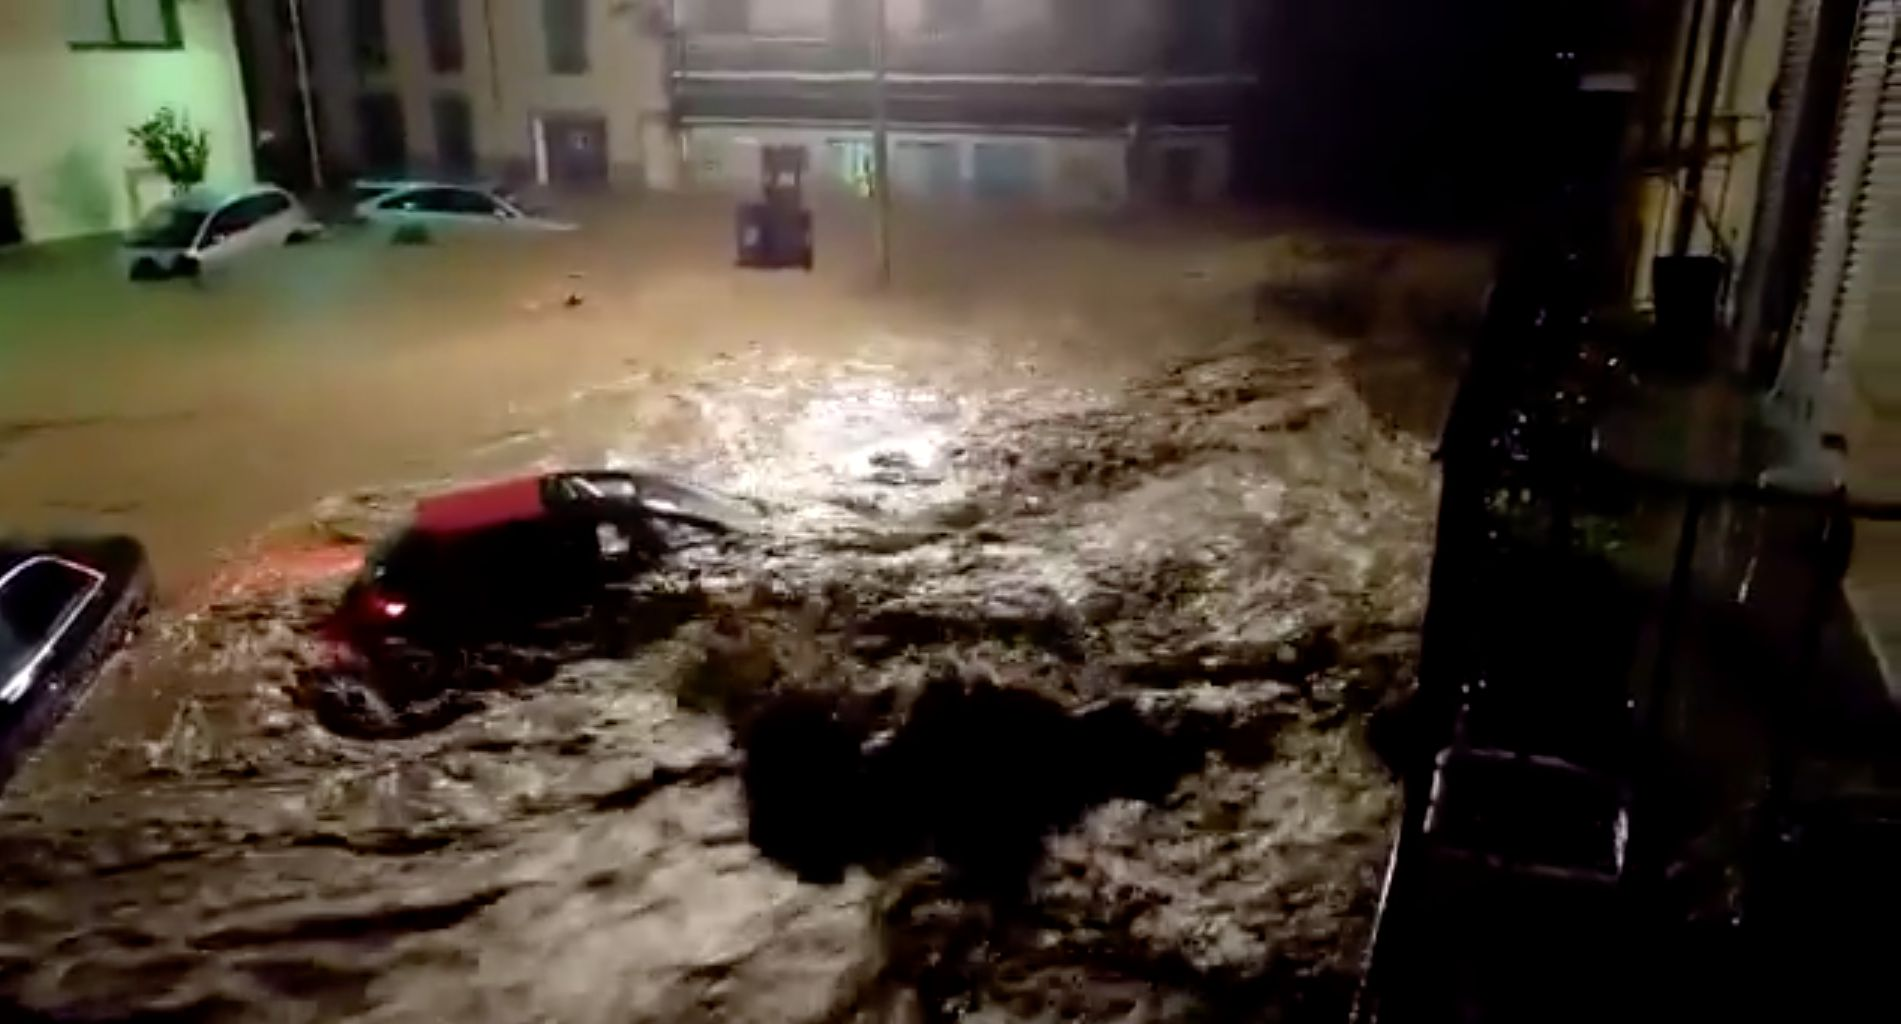 British pair feared dead as Majorca flash floods kill five